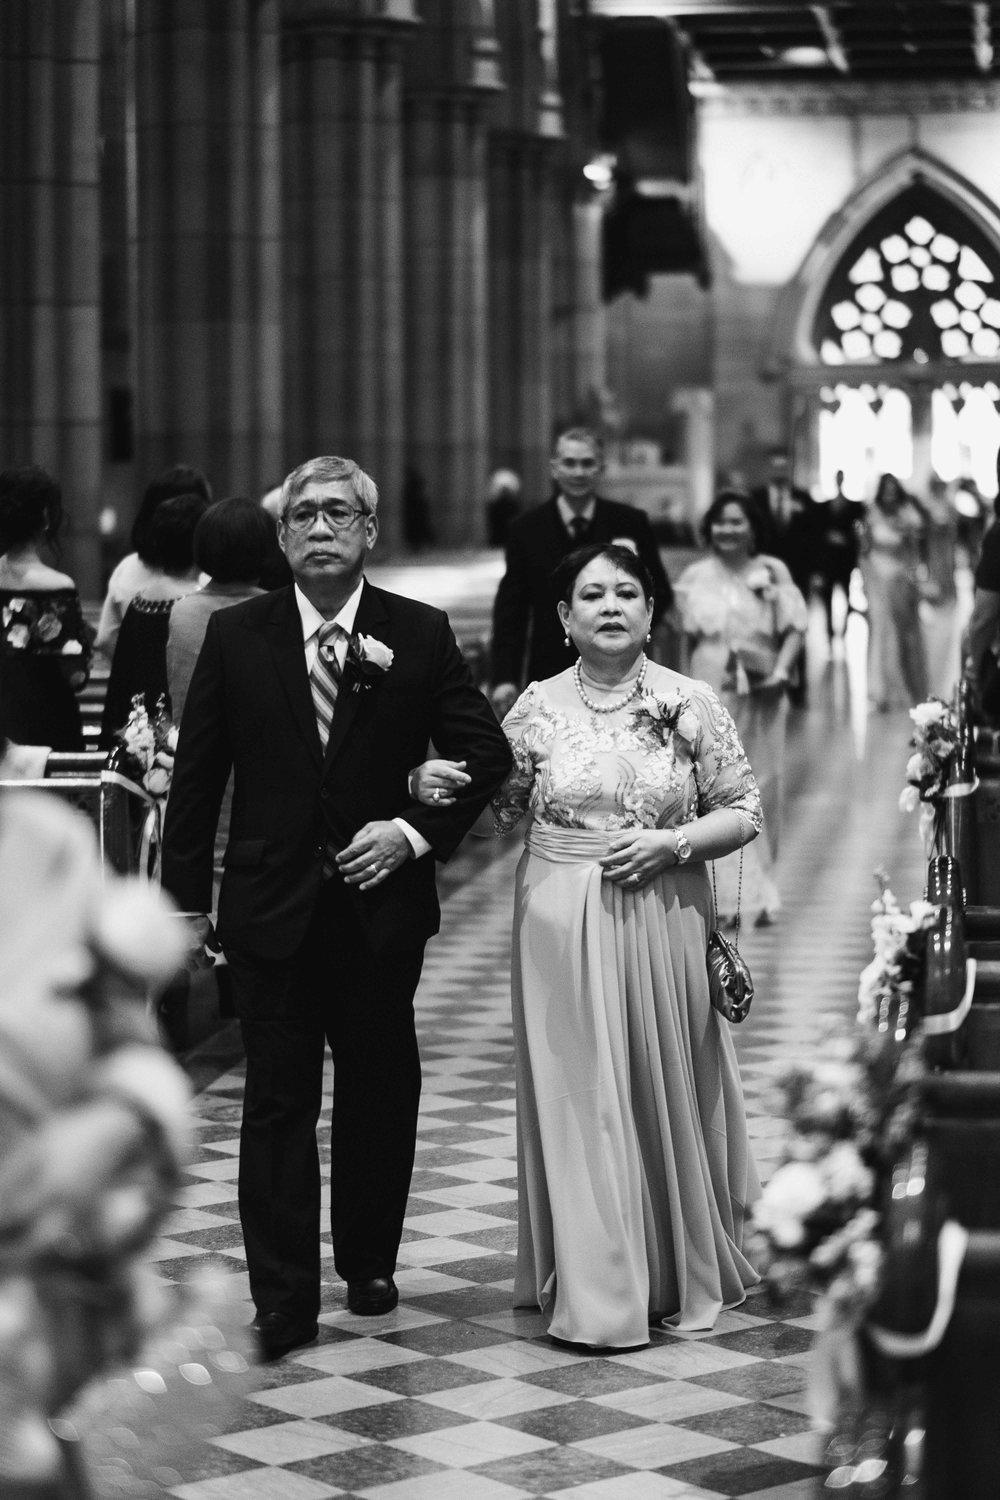 Maria and Gerald Sydney wedding by Milton Gan Photography 07.jpg